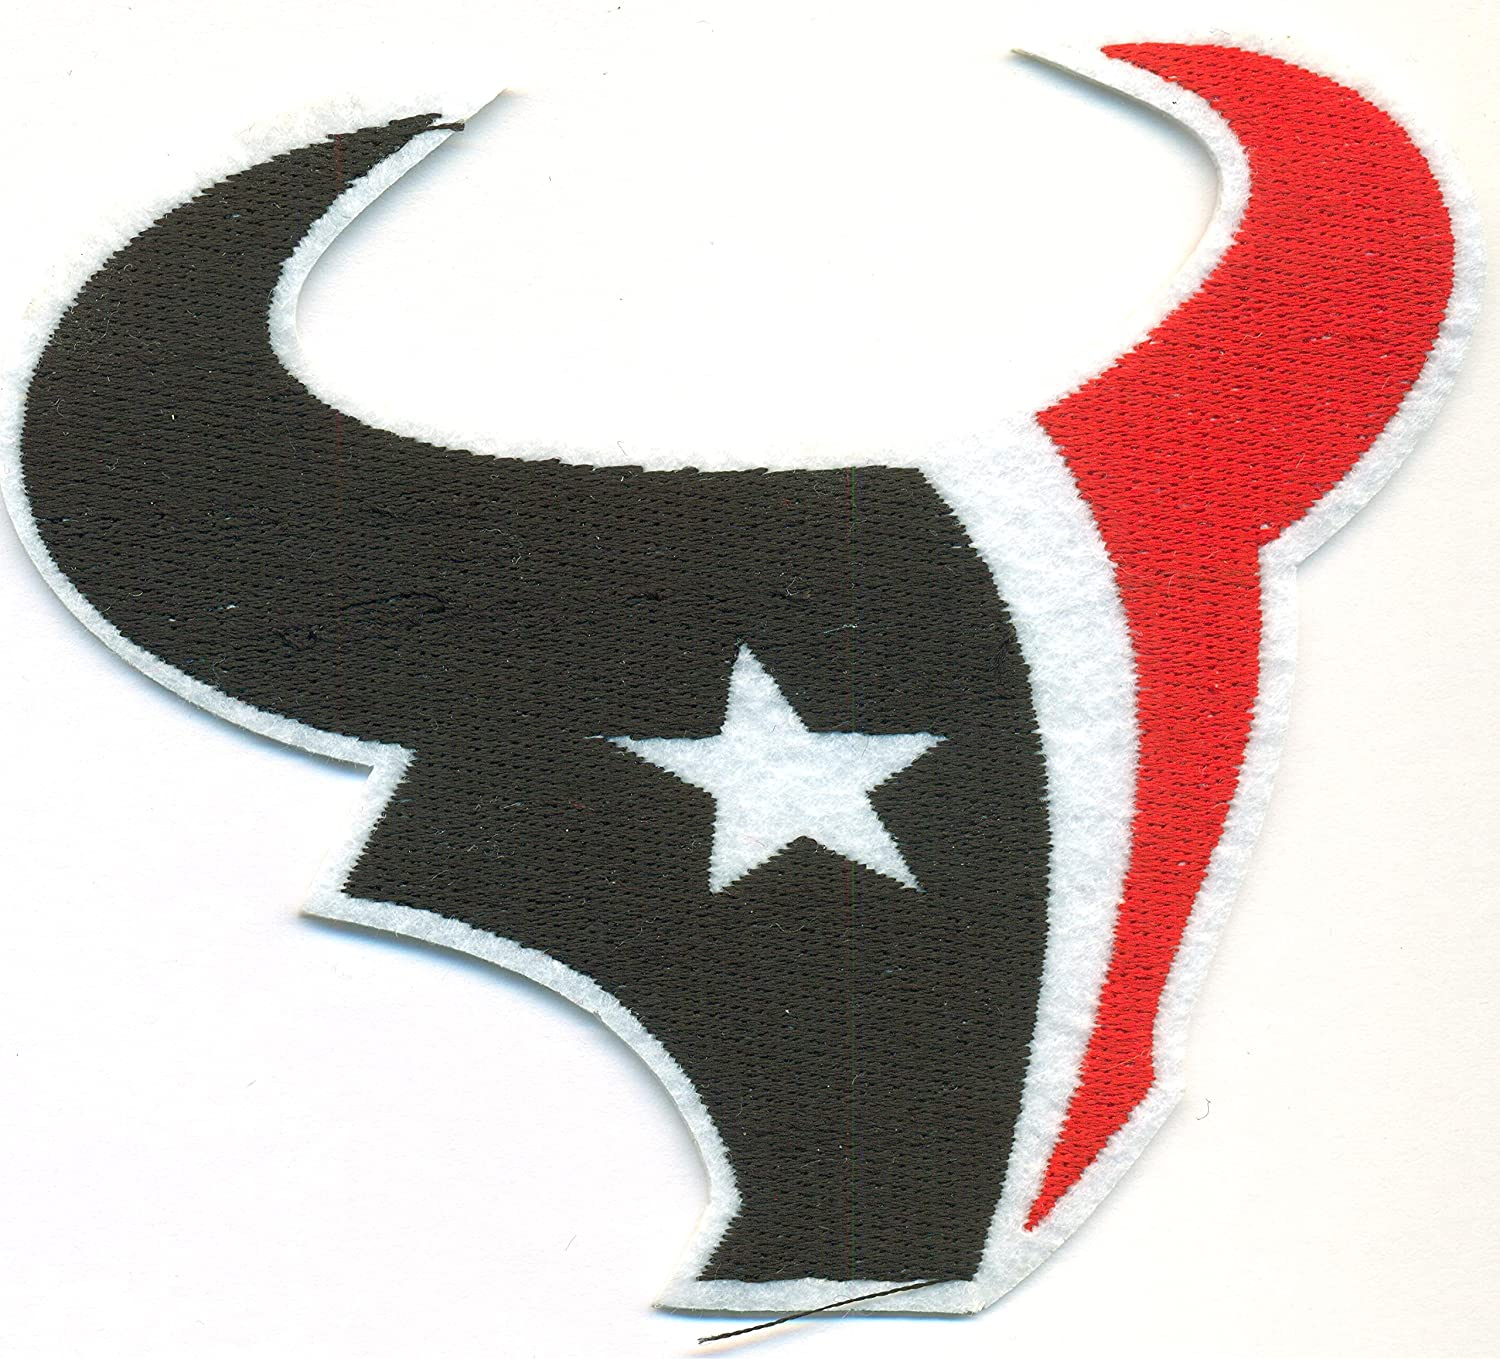 30 off houston texans logo football nfl embroidered iron on patches hat jersey